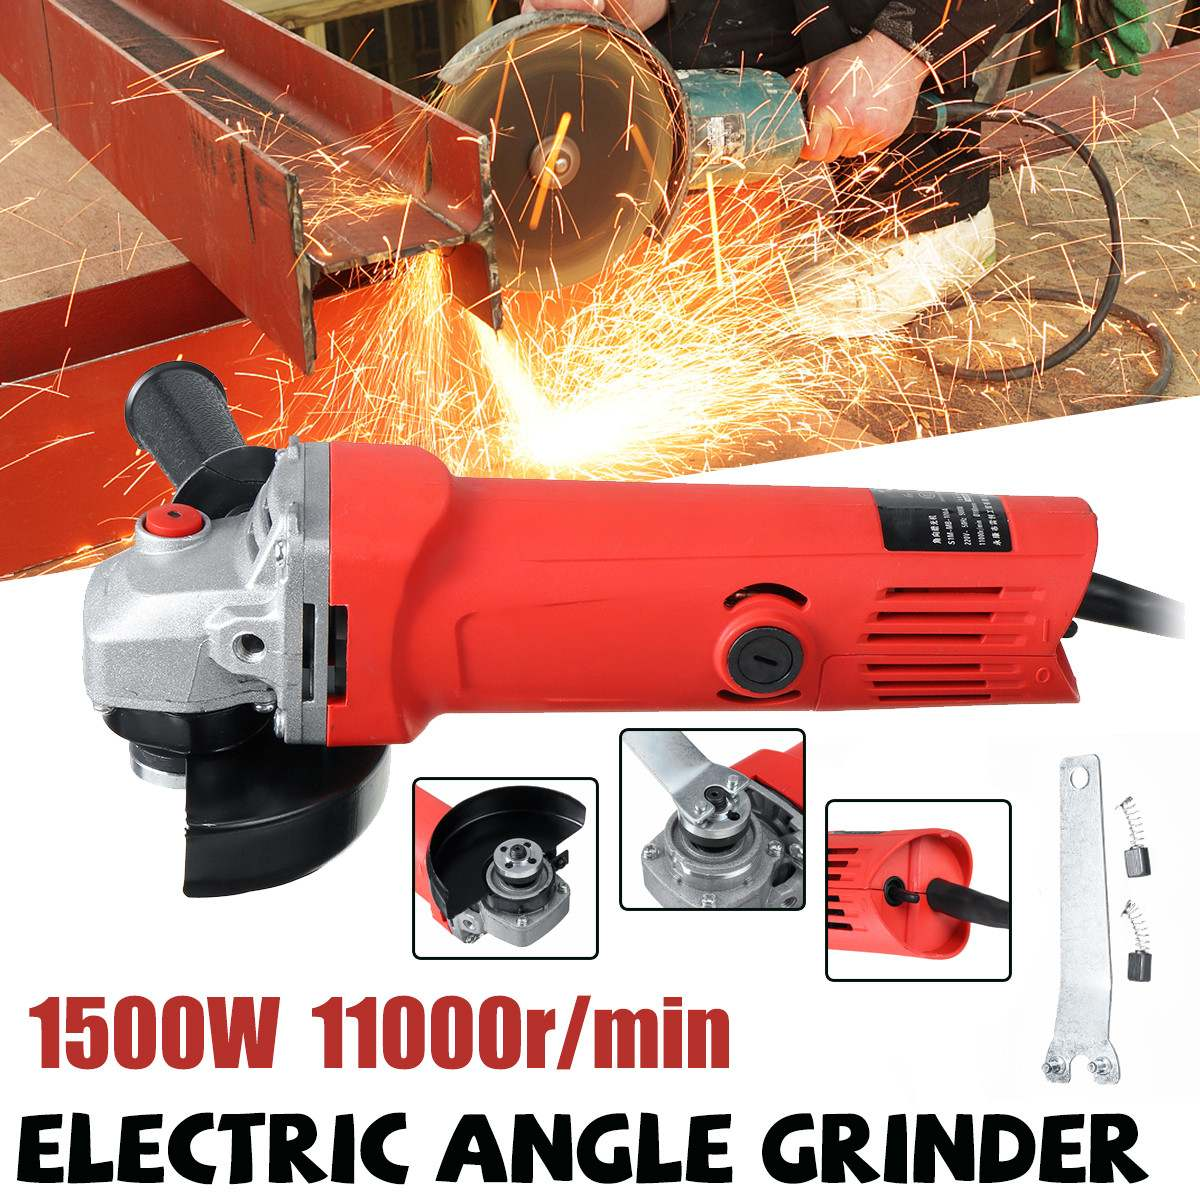 1500W Electric Angle Grinder 100mm Multi-function Household Sander Grinding Metal Stone Cutting Woodworking Grinder Power Tool